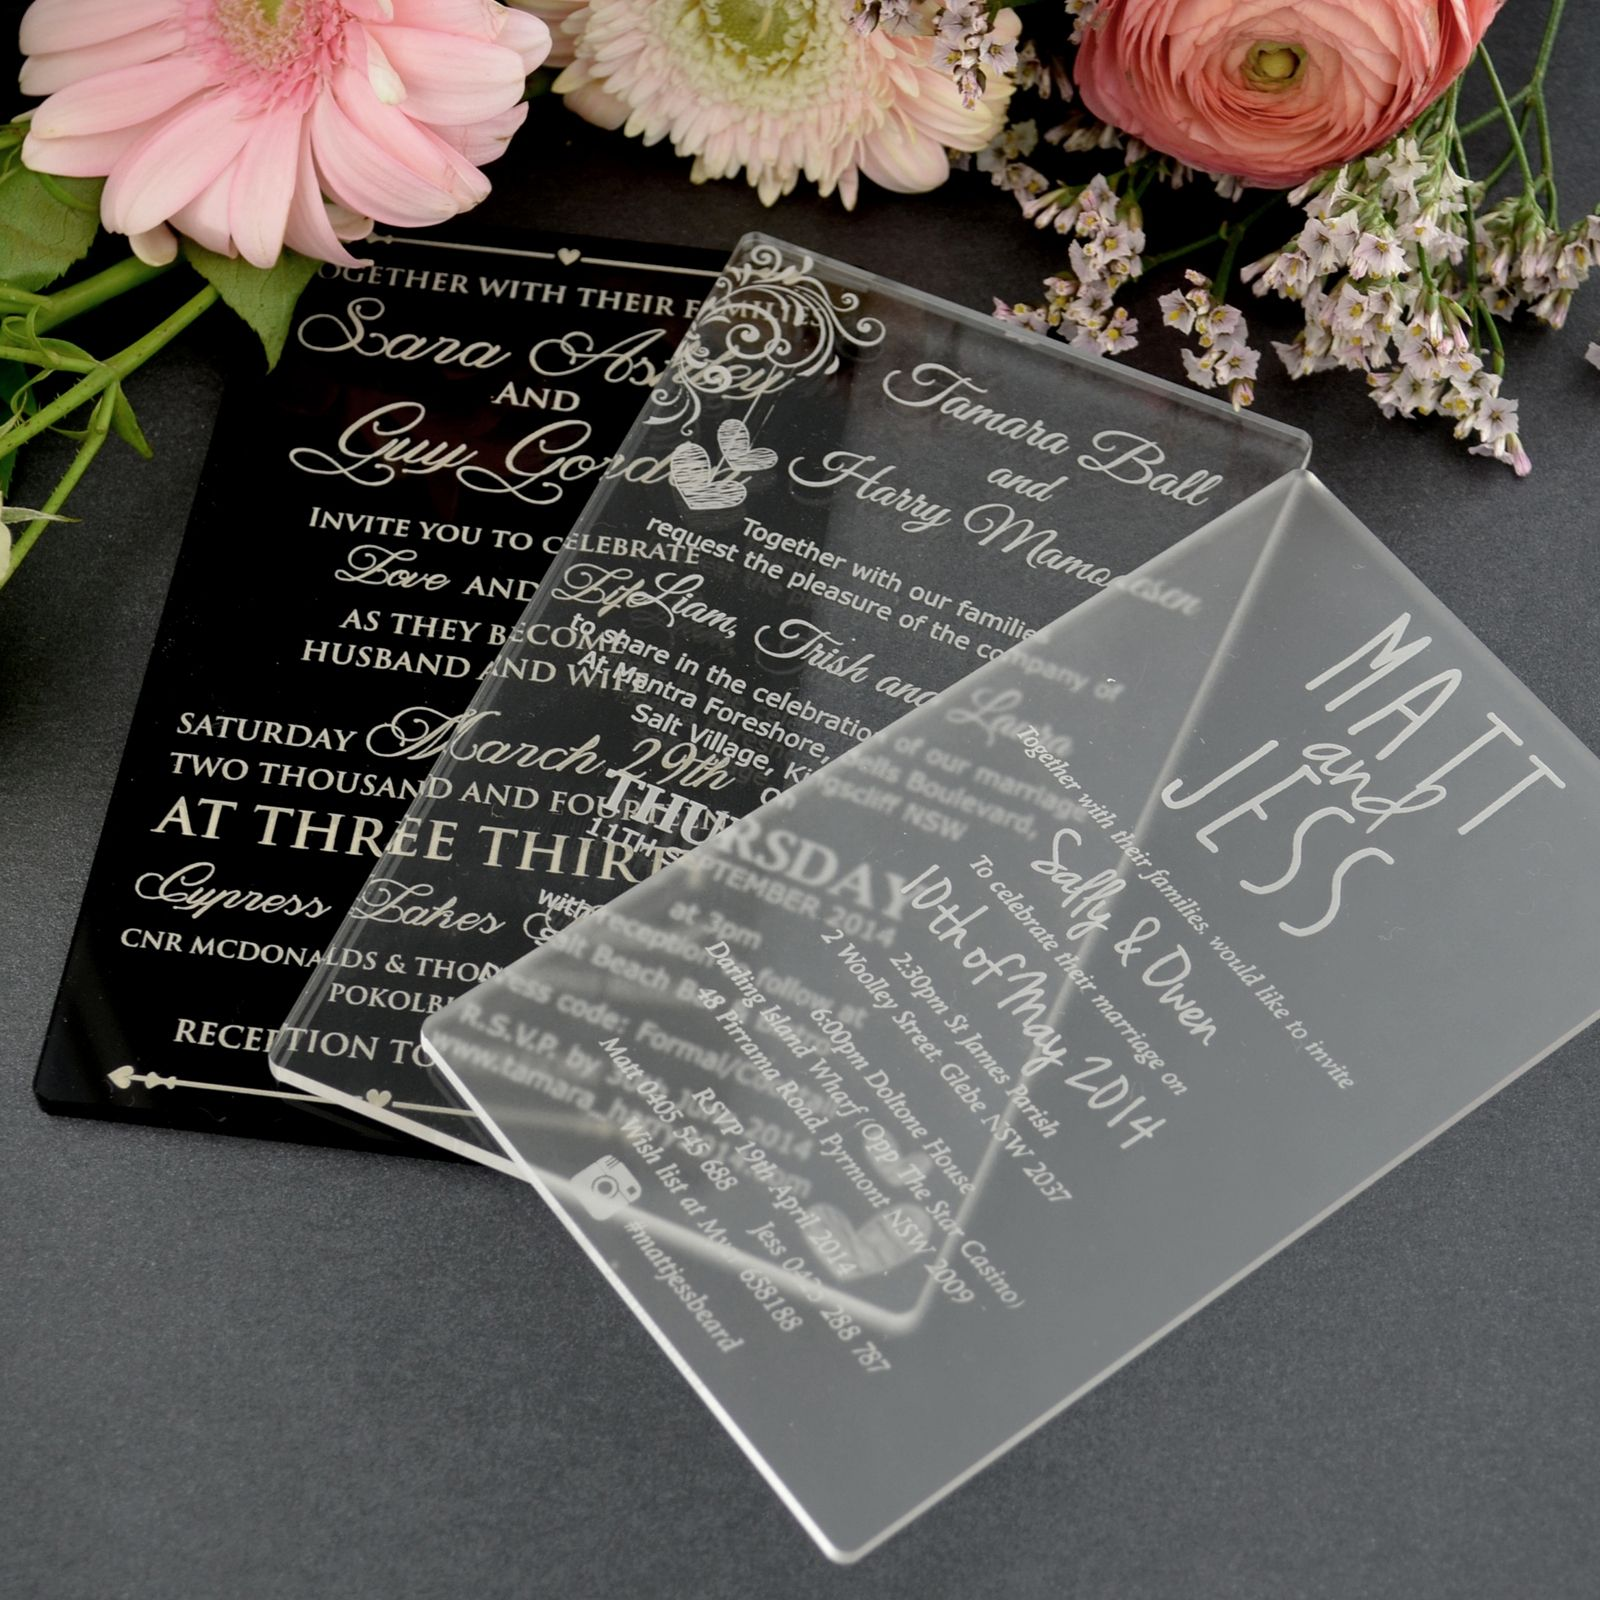 Wedding Abroad Invitation Wording Ideas: 11B Engraved Acrylic Wedding Invitations $5...PERSONALIZED